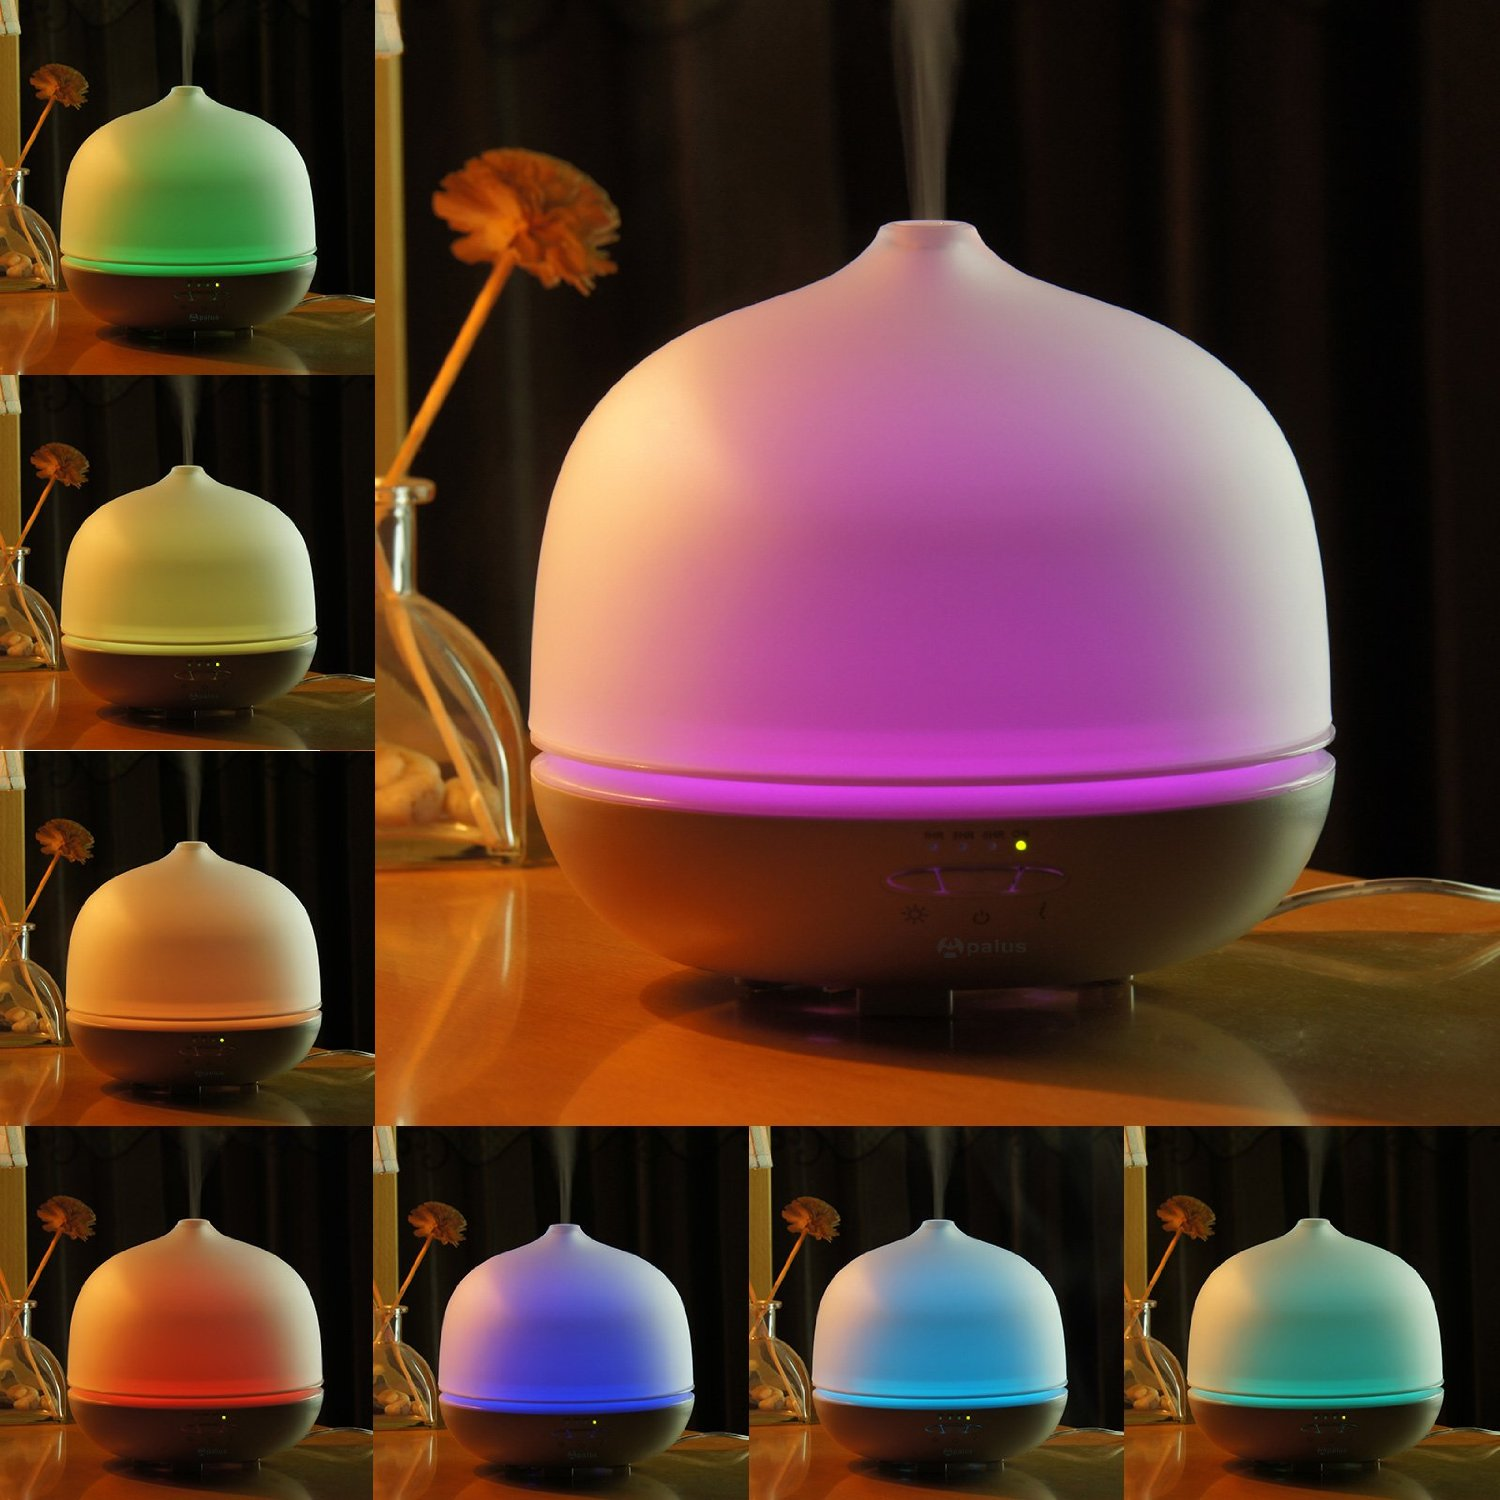 Apalus 500 ML Glass Essential Oil Diffuser, Ultrasonic Aromatherapy Diffuser